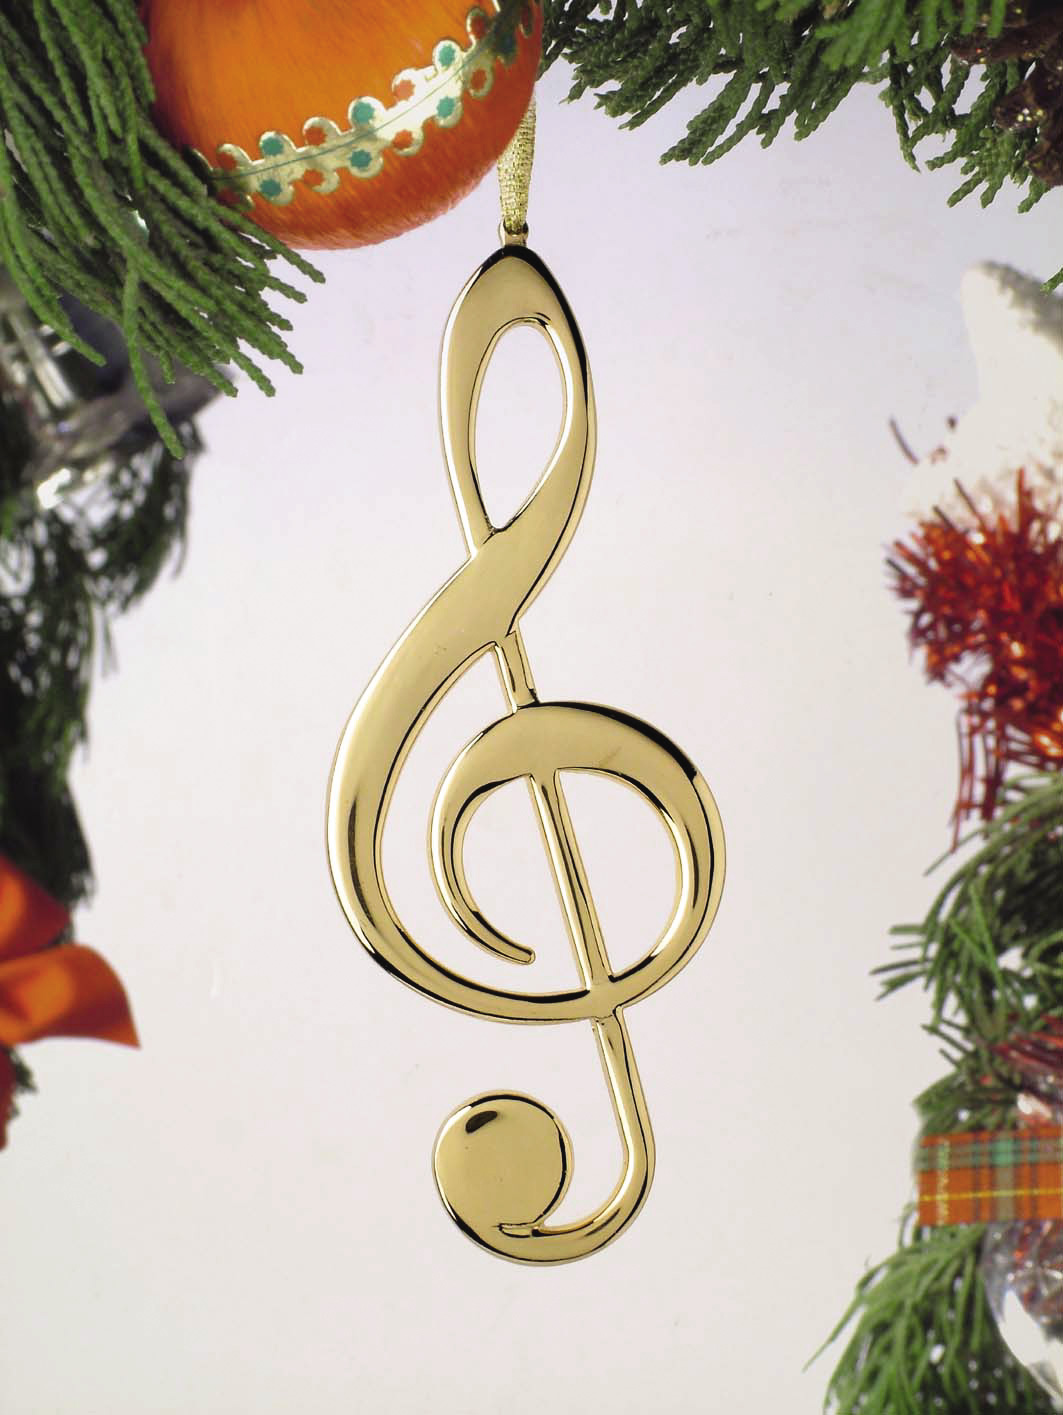 Buy Treble Clef Christmas Ornament | Music Gift | Christmas ...